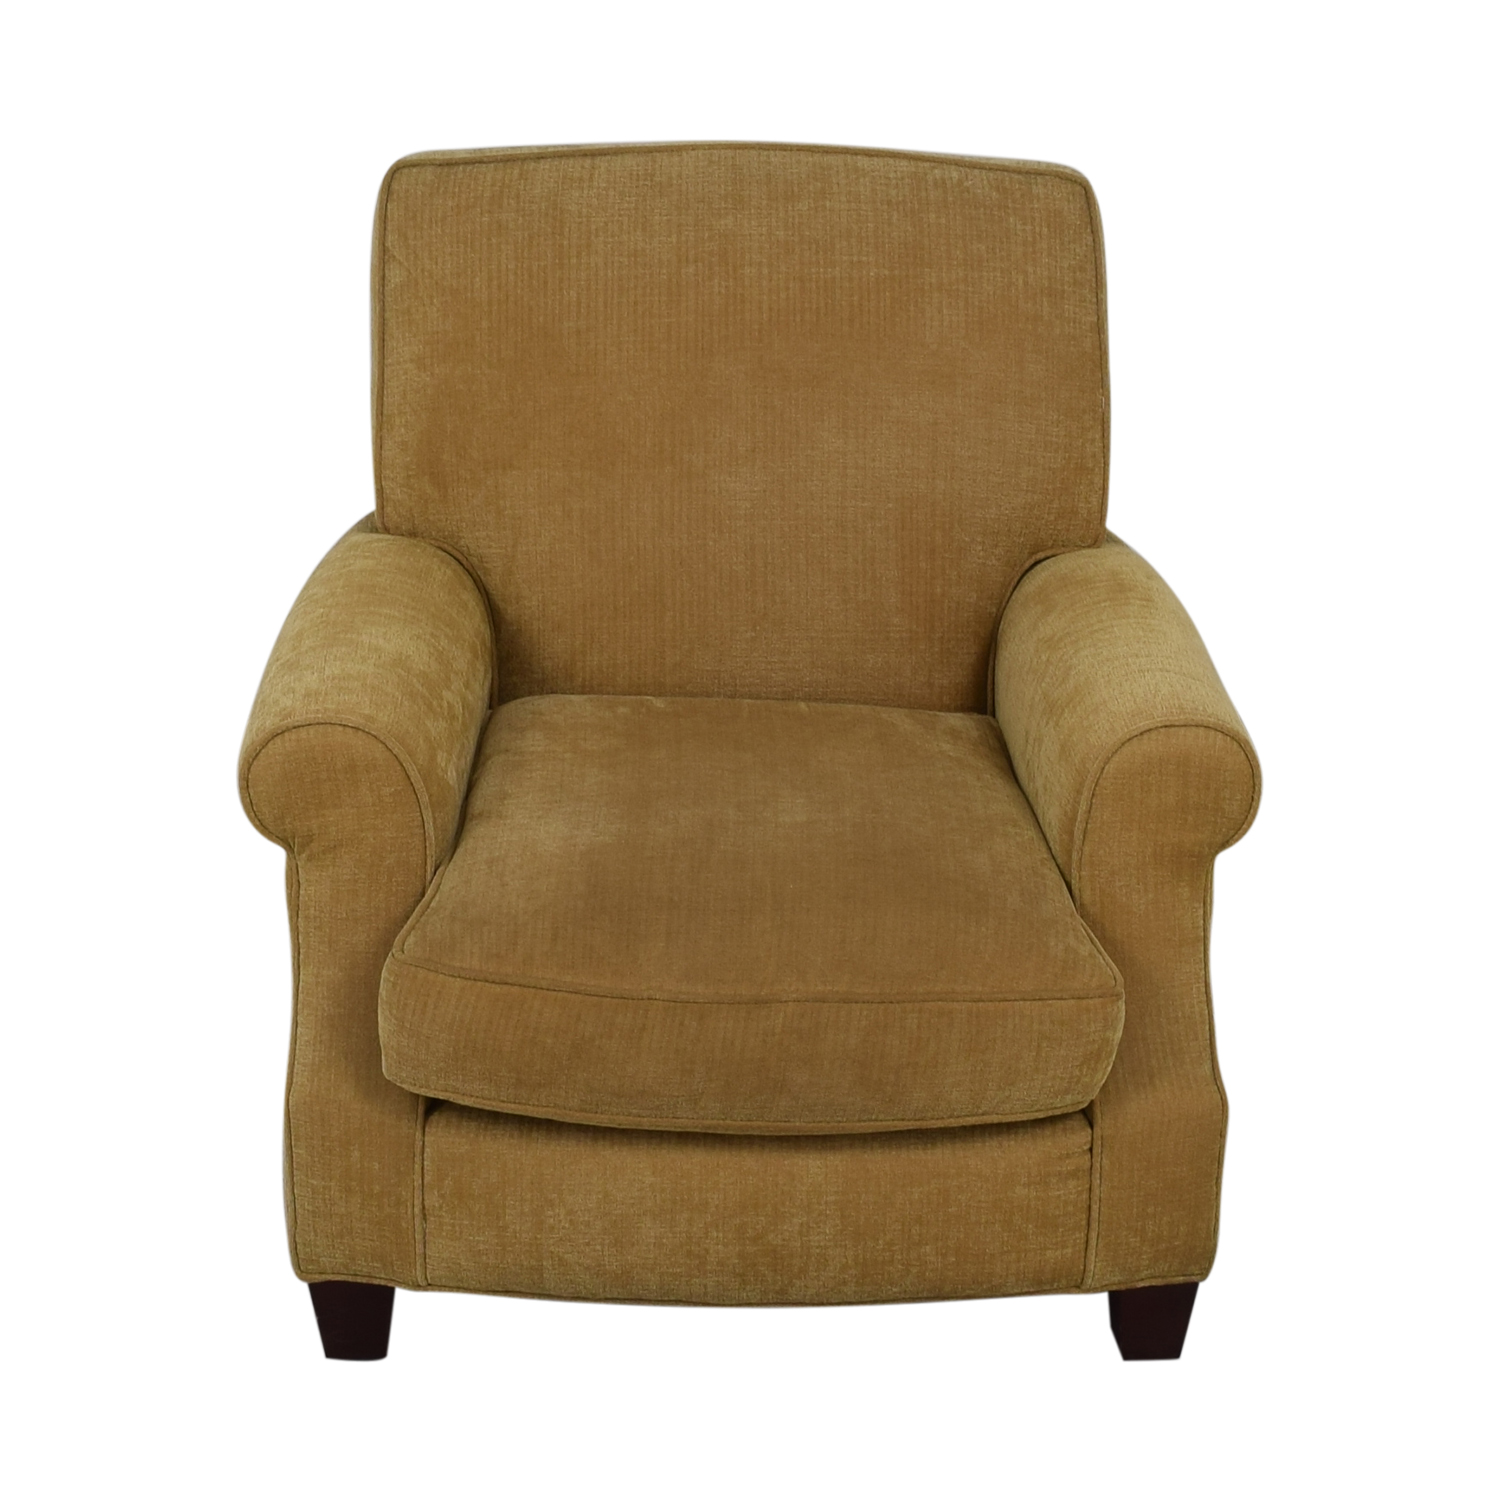 64 Off Crate Barrel Crate Barrel Yellow Gold Upholstered